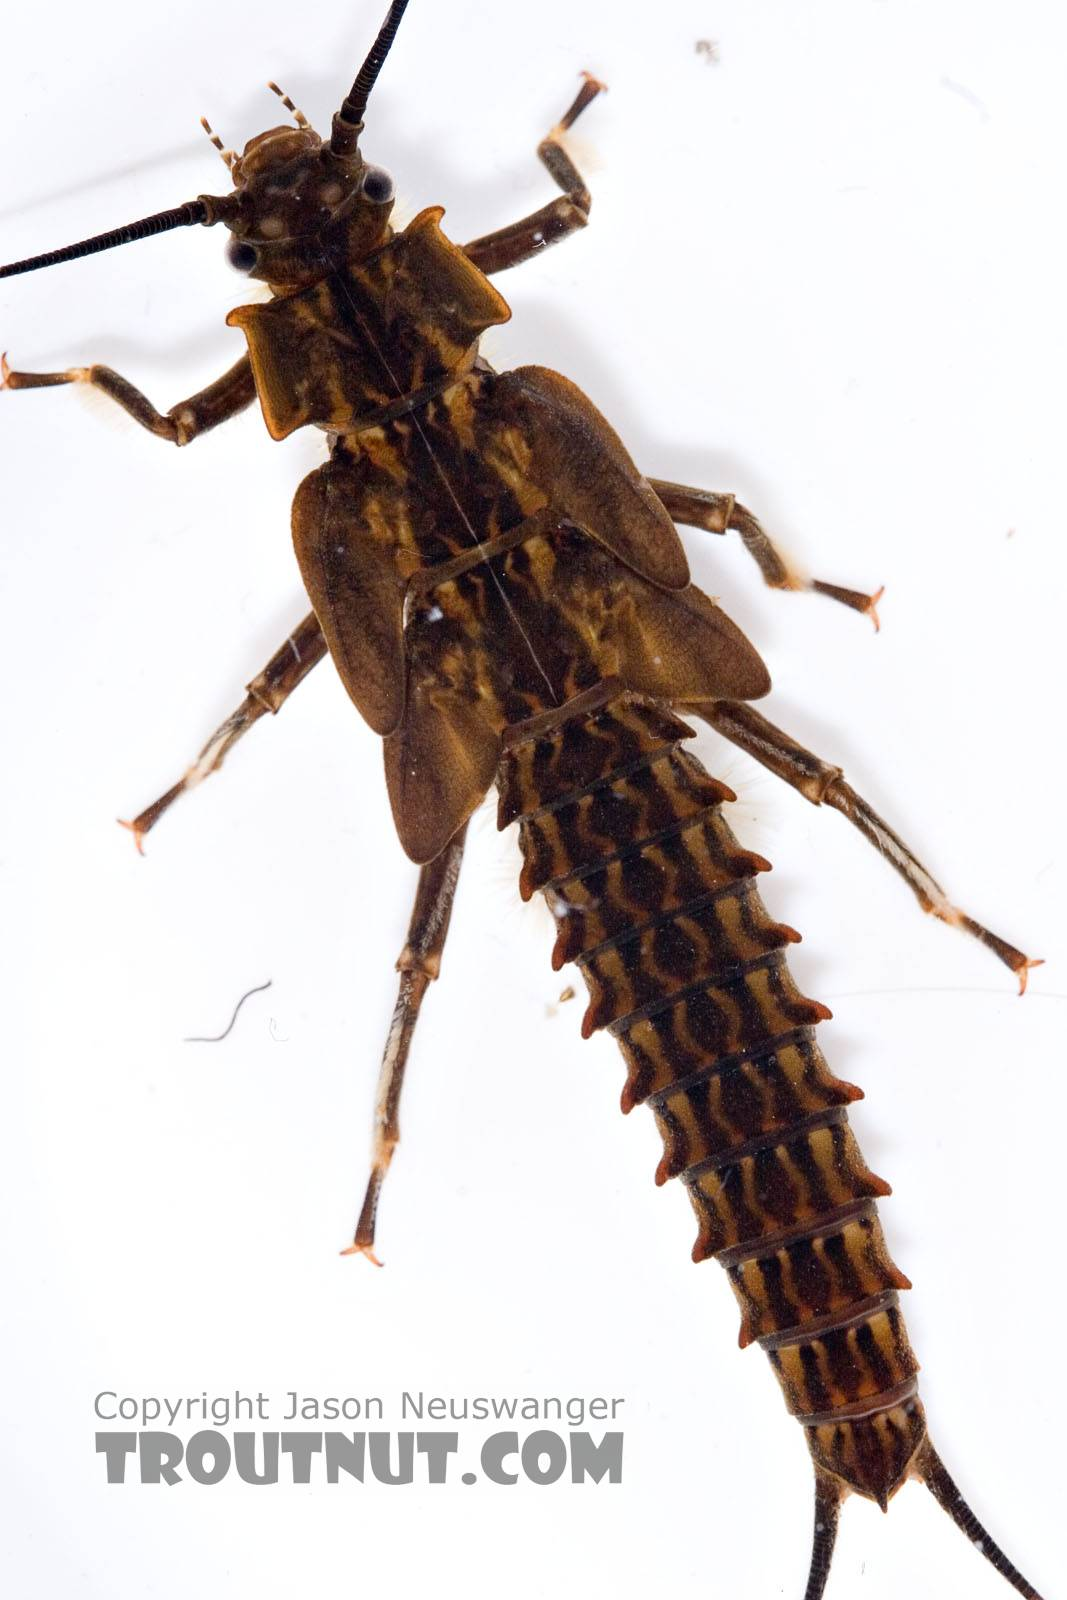 Pteronarcys biloba (Knobbed Salmonfly) Stonefly Nymph from the Neversink River (above reservoir) in New York